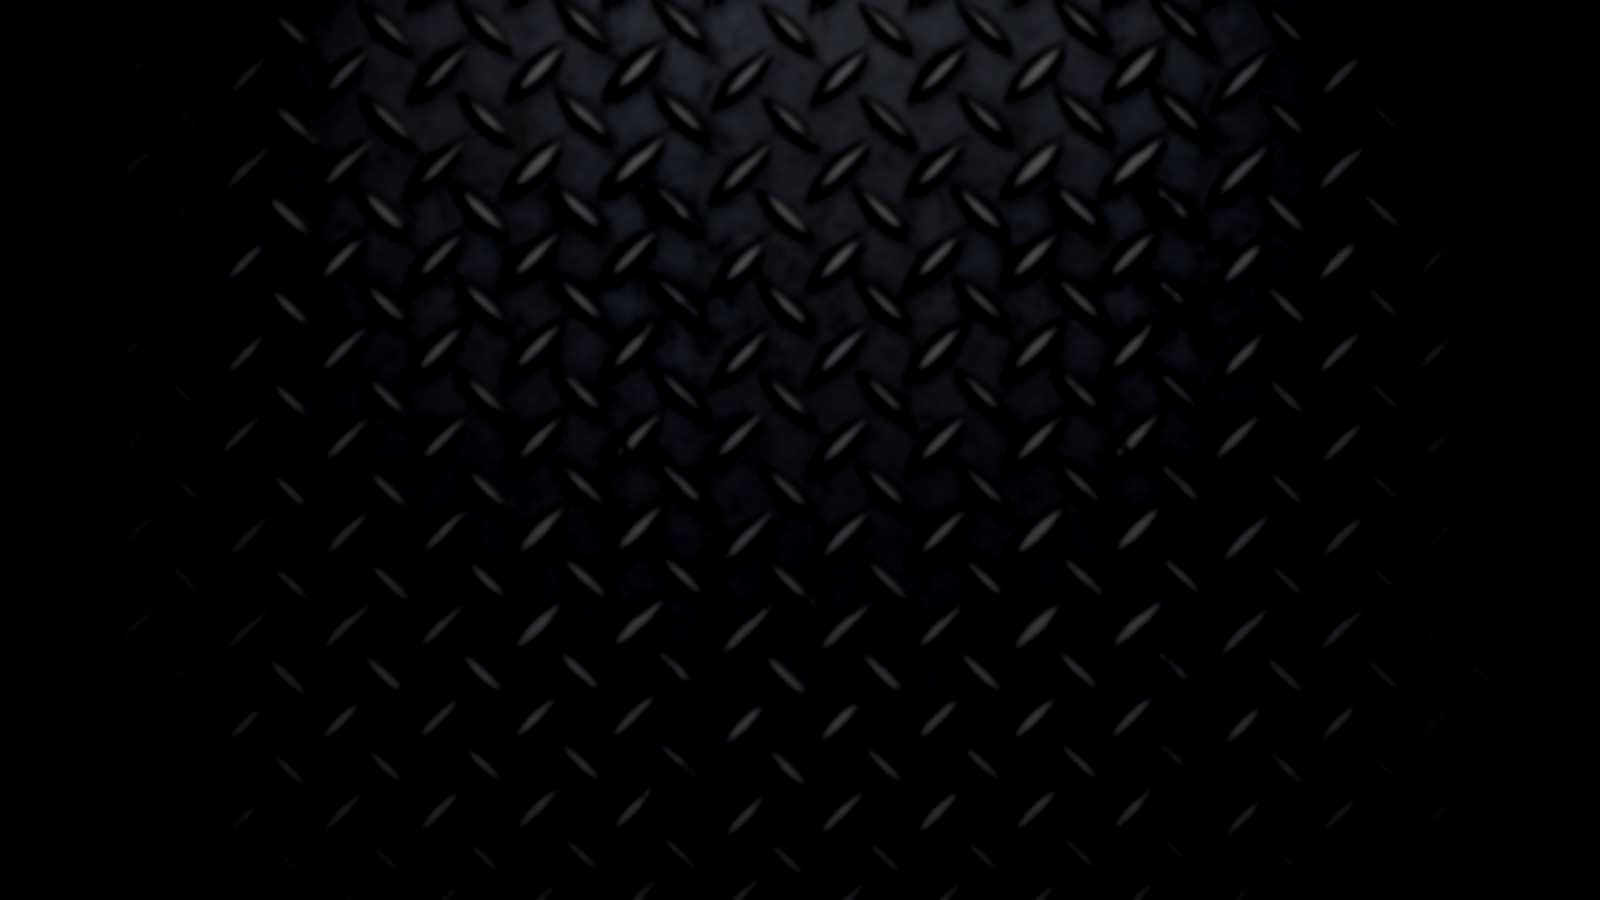 Black nonslip background